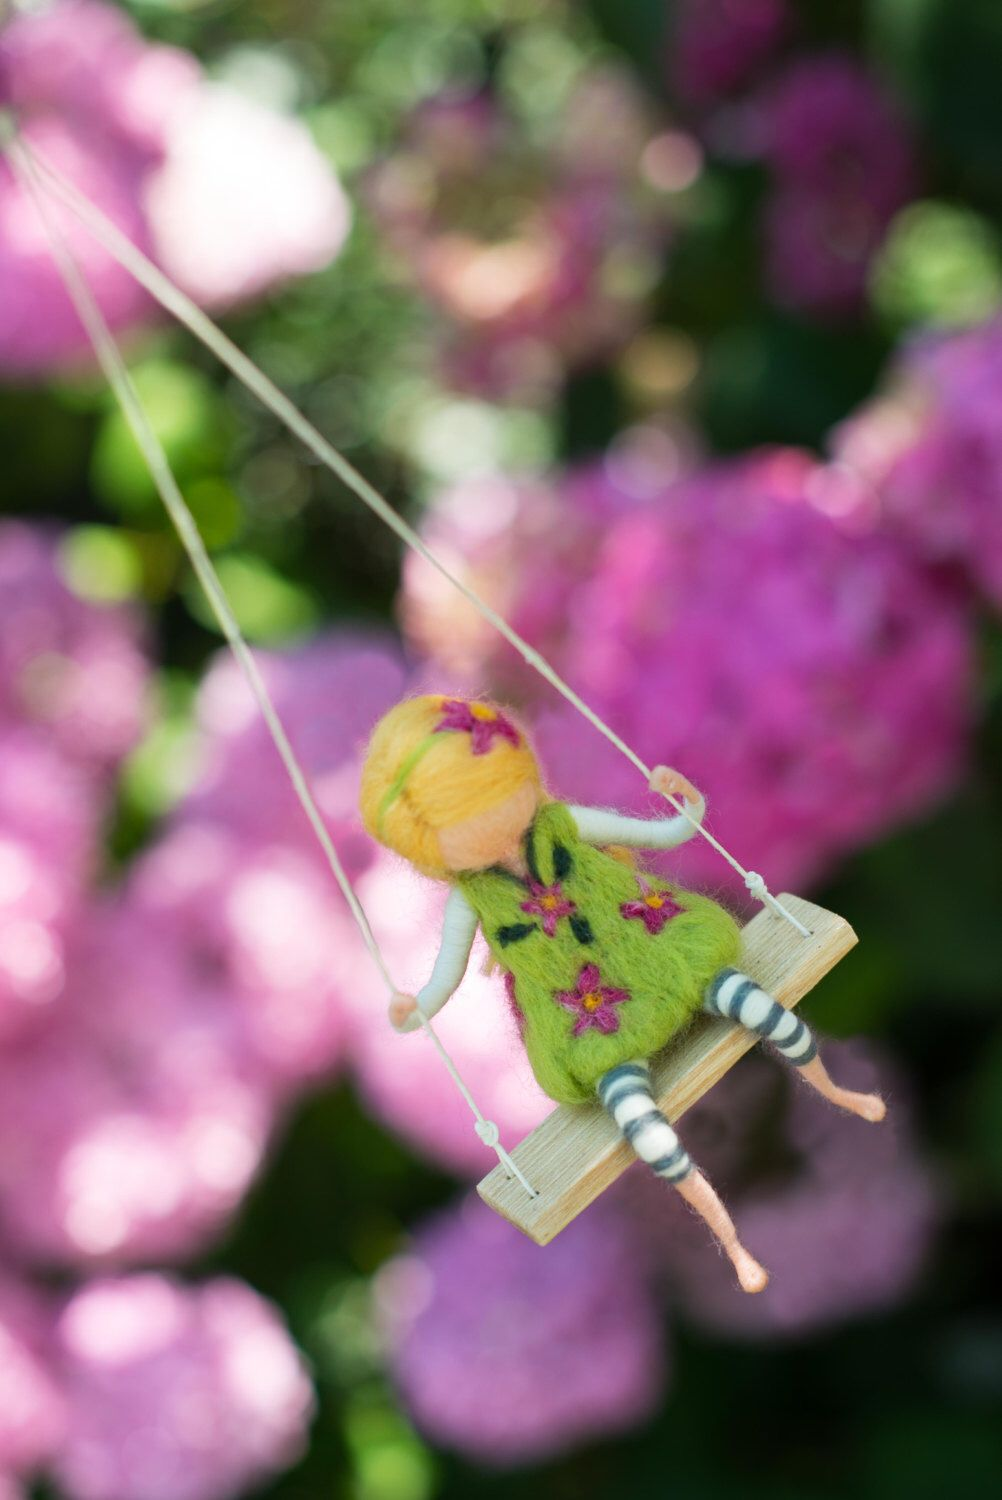 Girl in a green dress with violet flowers on a swing needle felted girl in a green dress with violet flowers on a swing needle felted doll cute and beautiful decoration or gift for all occasions izmirmasajfo Image collections